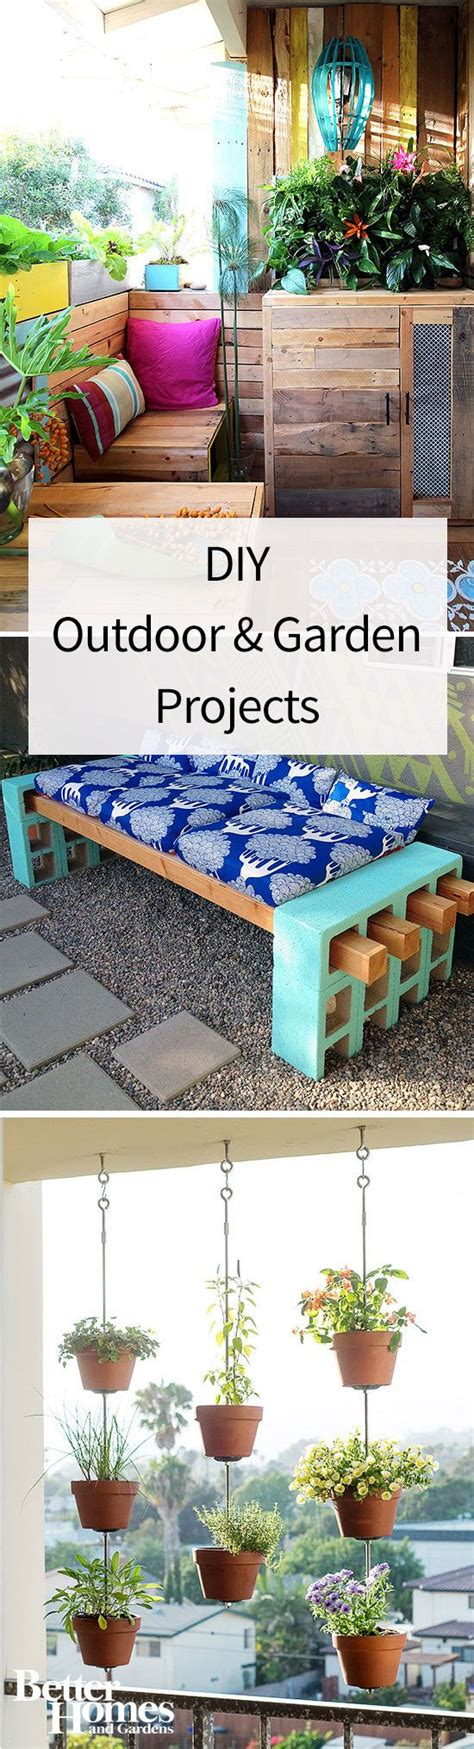 27 Diy Outdoor Decorations Ideas You Will Want To Start 17 Best Ideas About Small Deck Patio On Small Decks Small Deck Designs And Deck